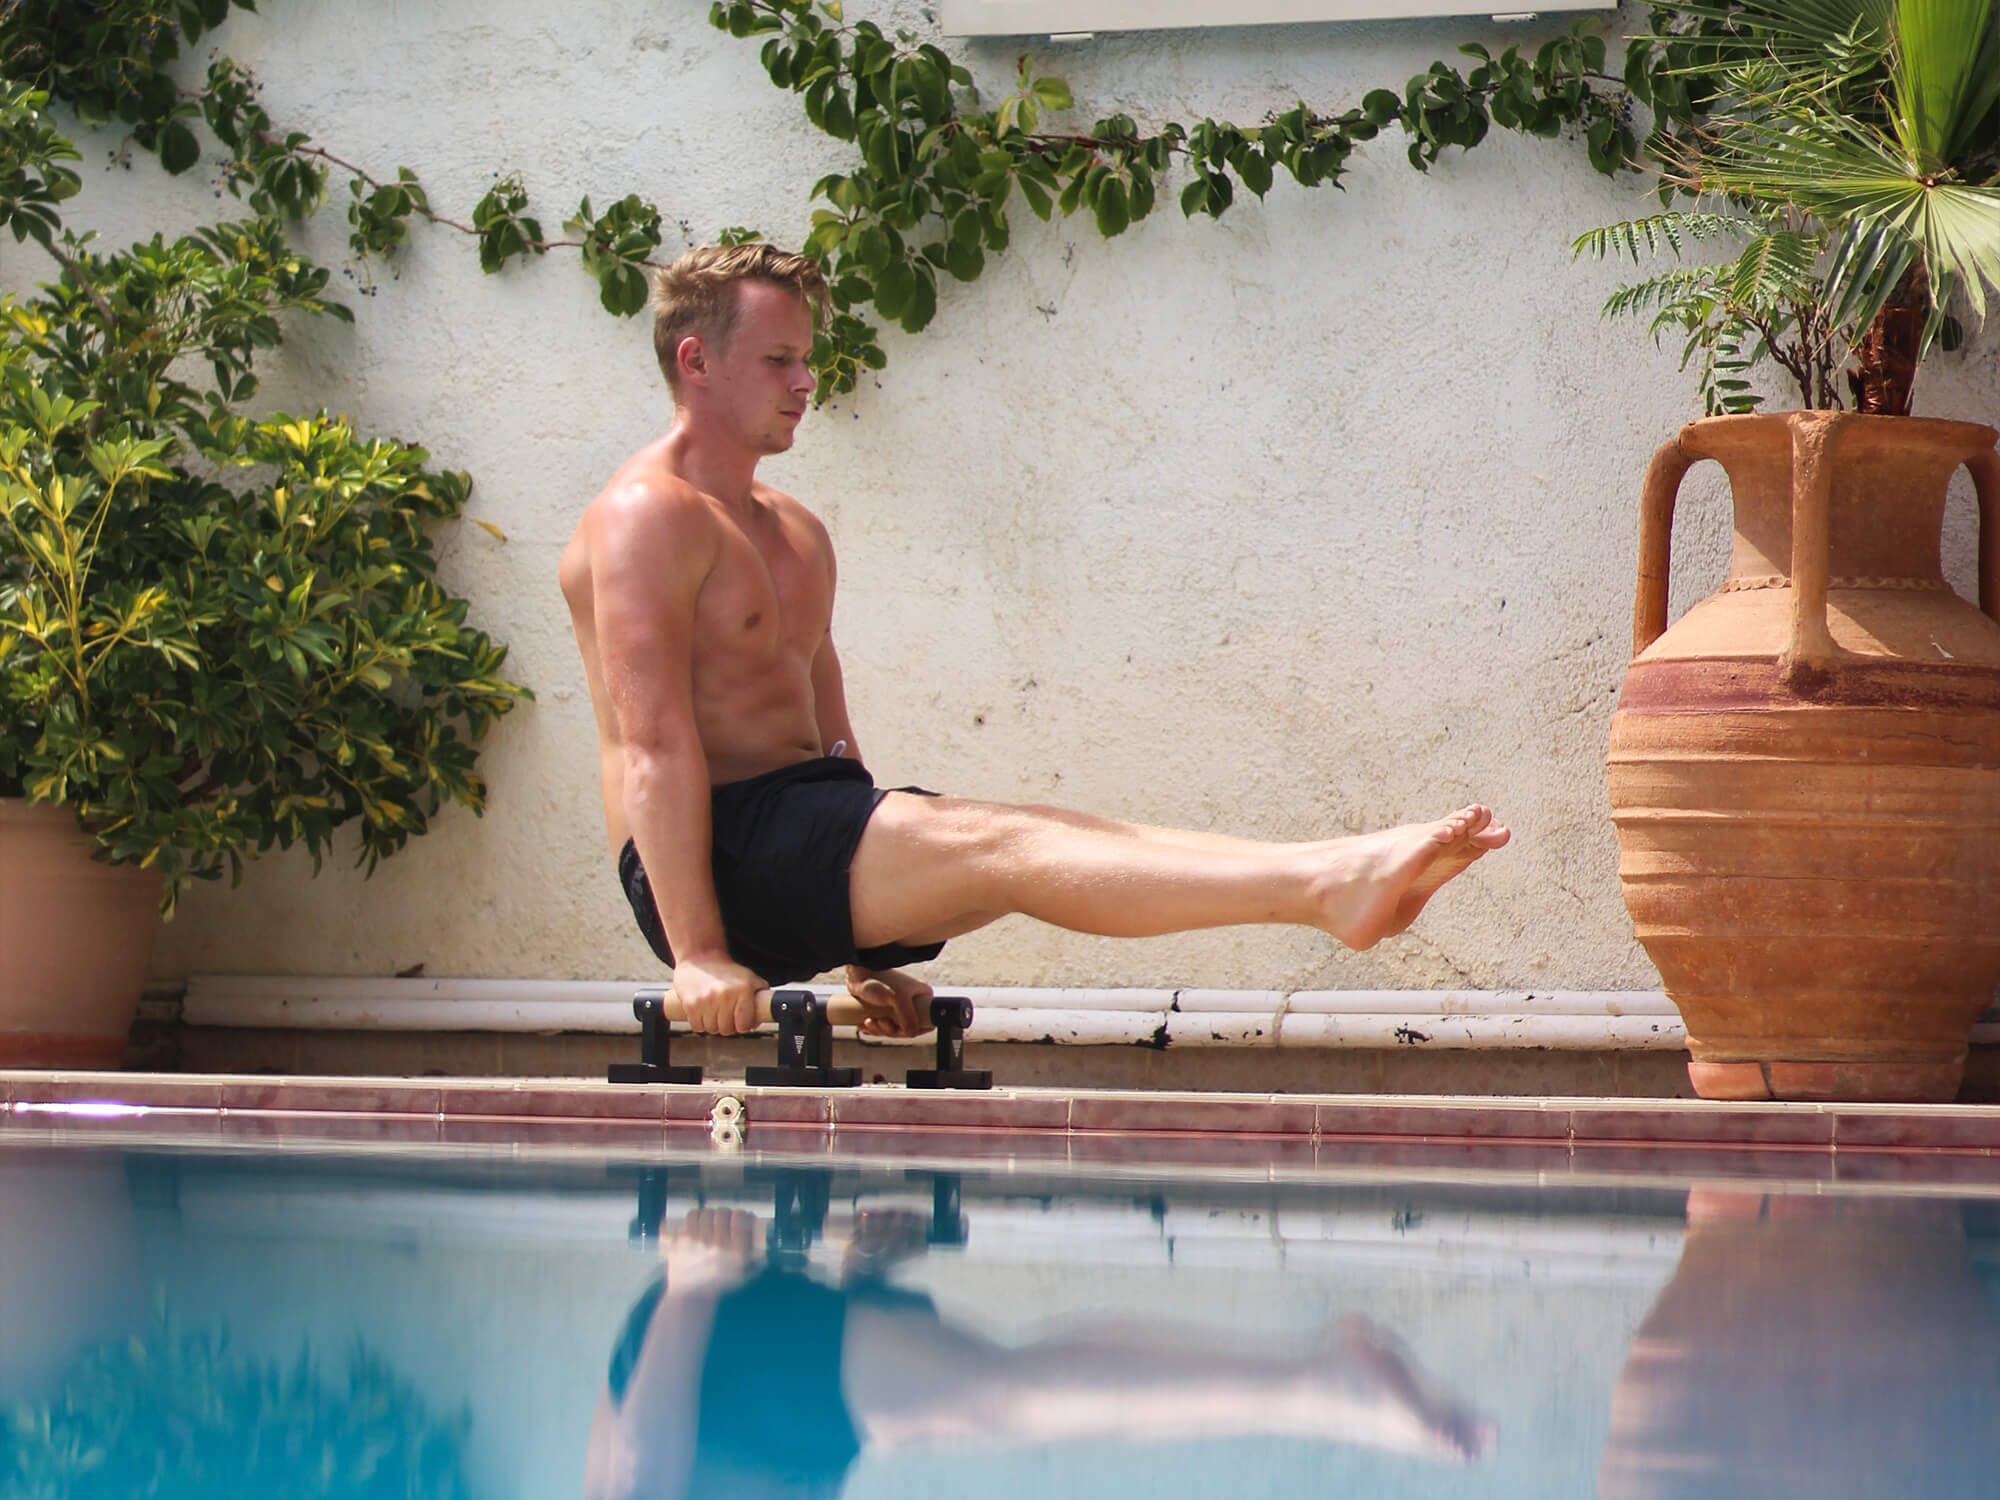 athlete doing l-sit on parallettes at the pool